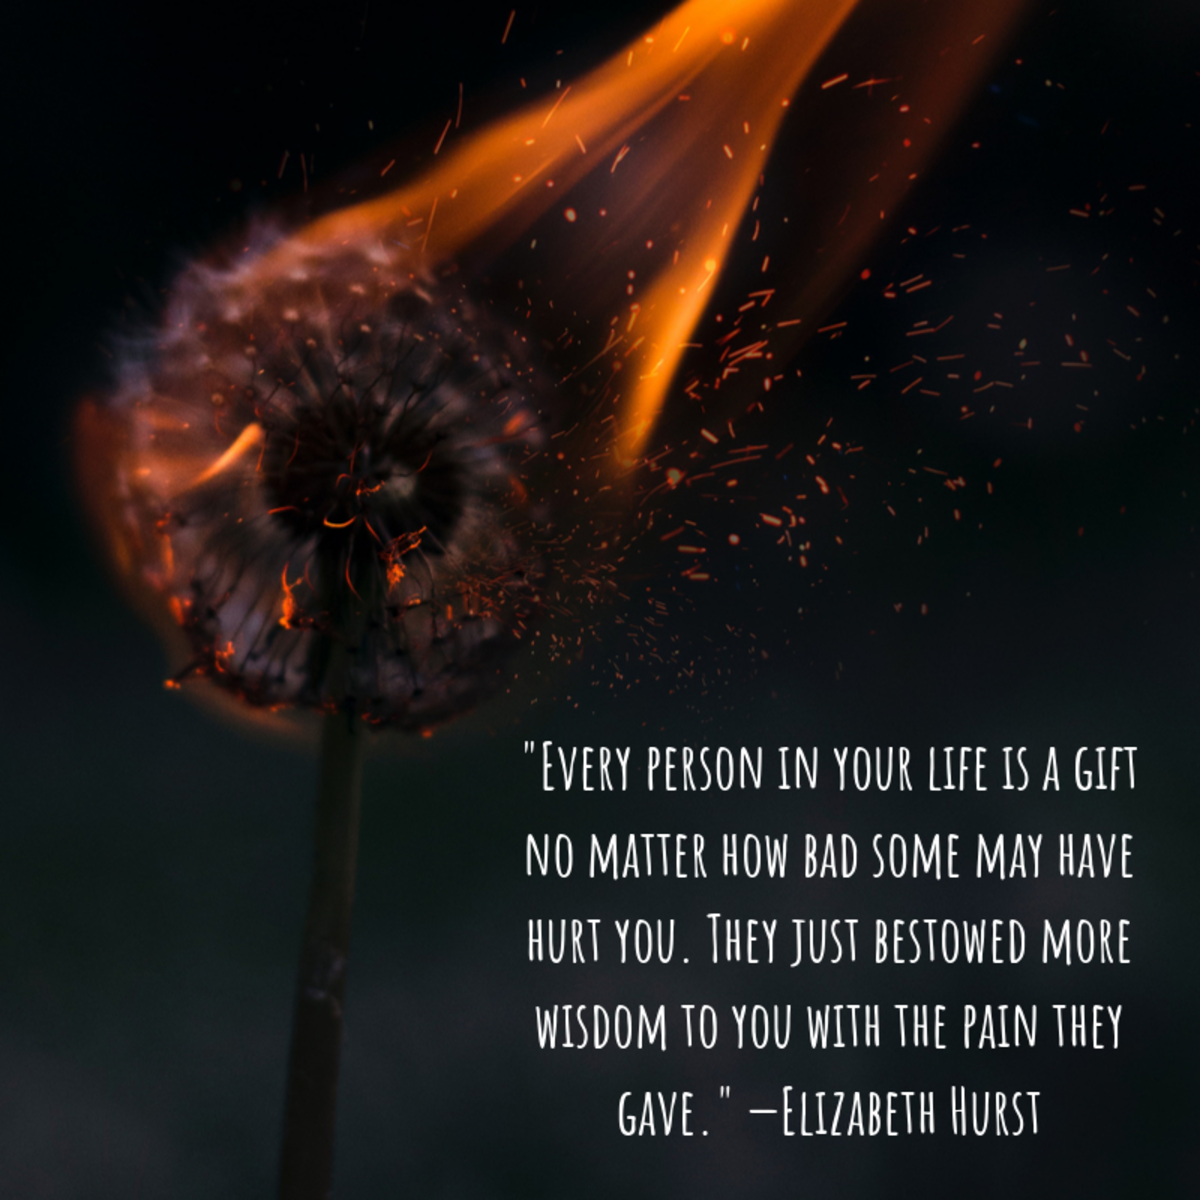 """Every person in your life is a gift no matter how bad some may have hurt you. They just bestowed more wisdom to you with the pain they gave."" —Elizabeth Hurst"